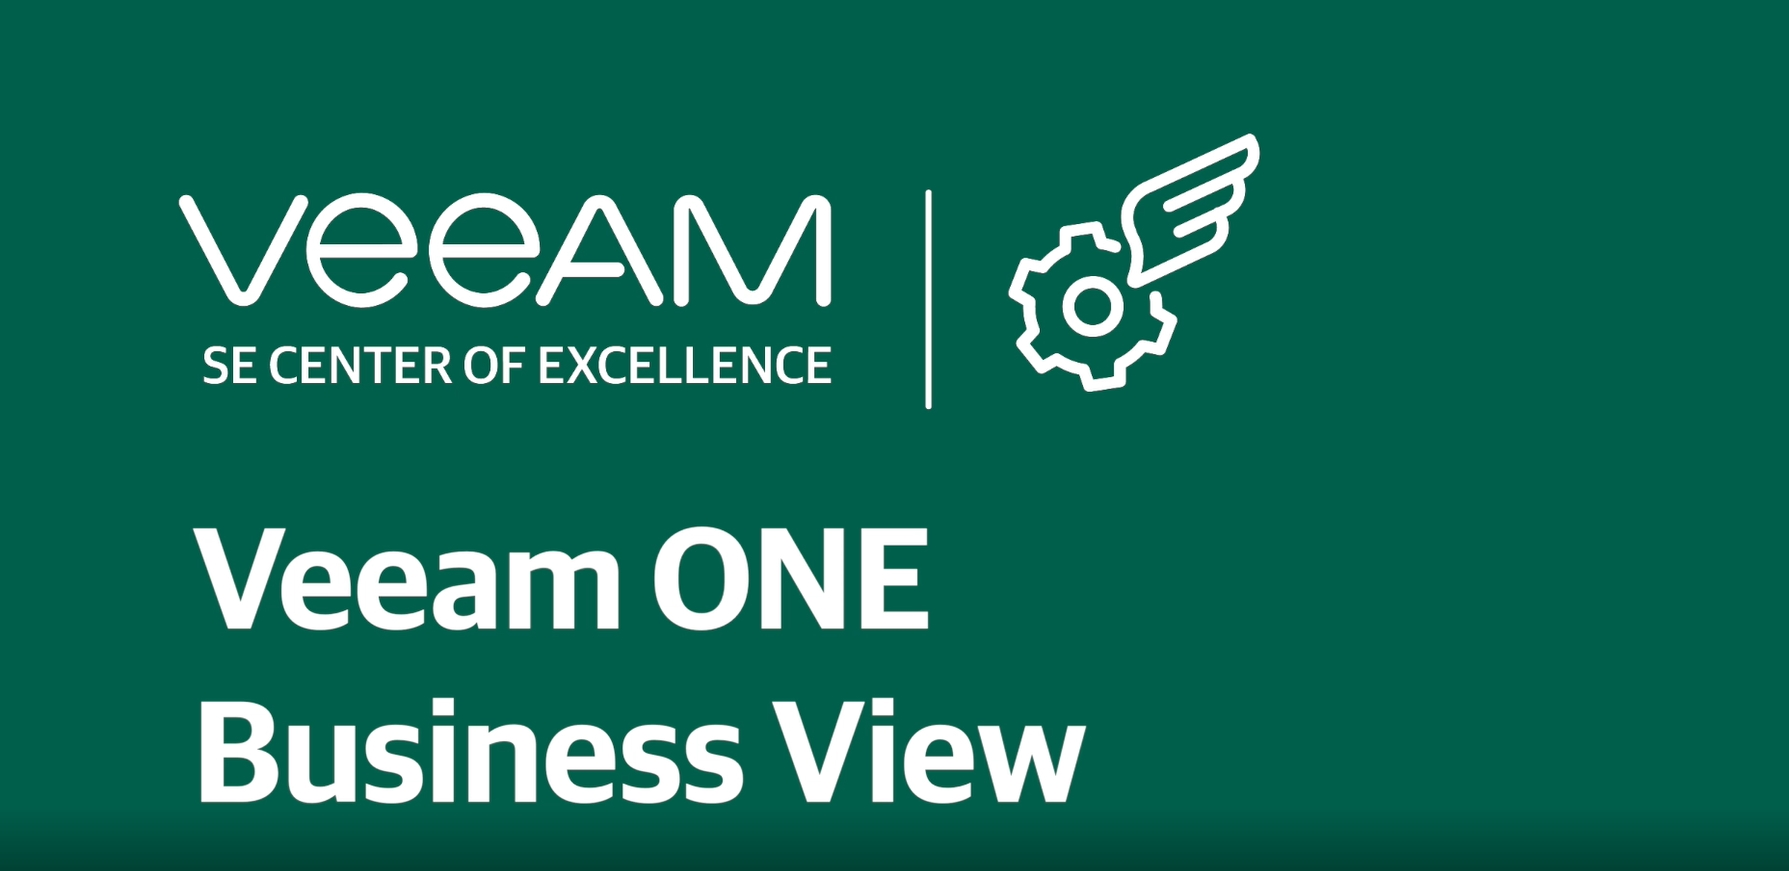 Monitor infrastructure with Veeam ONE Business View